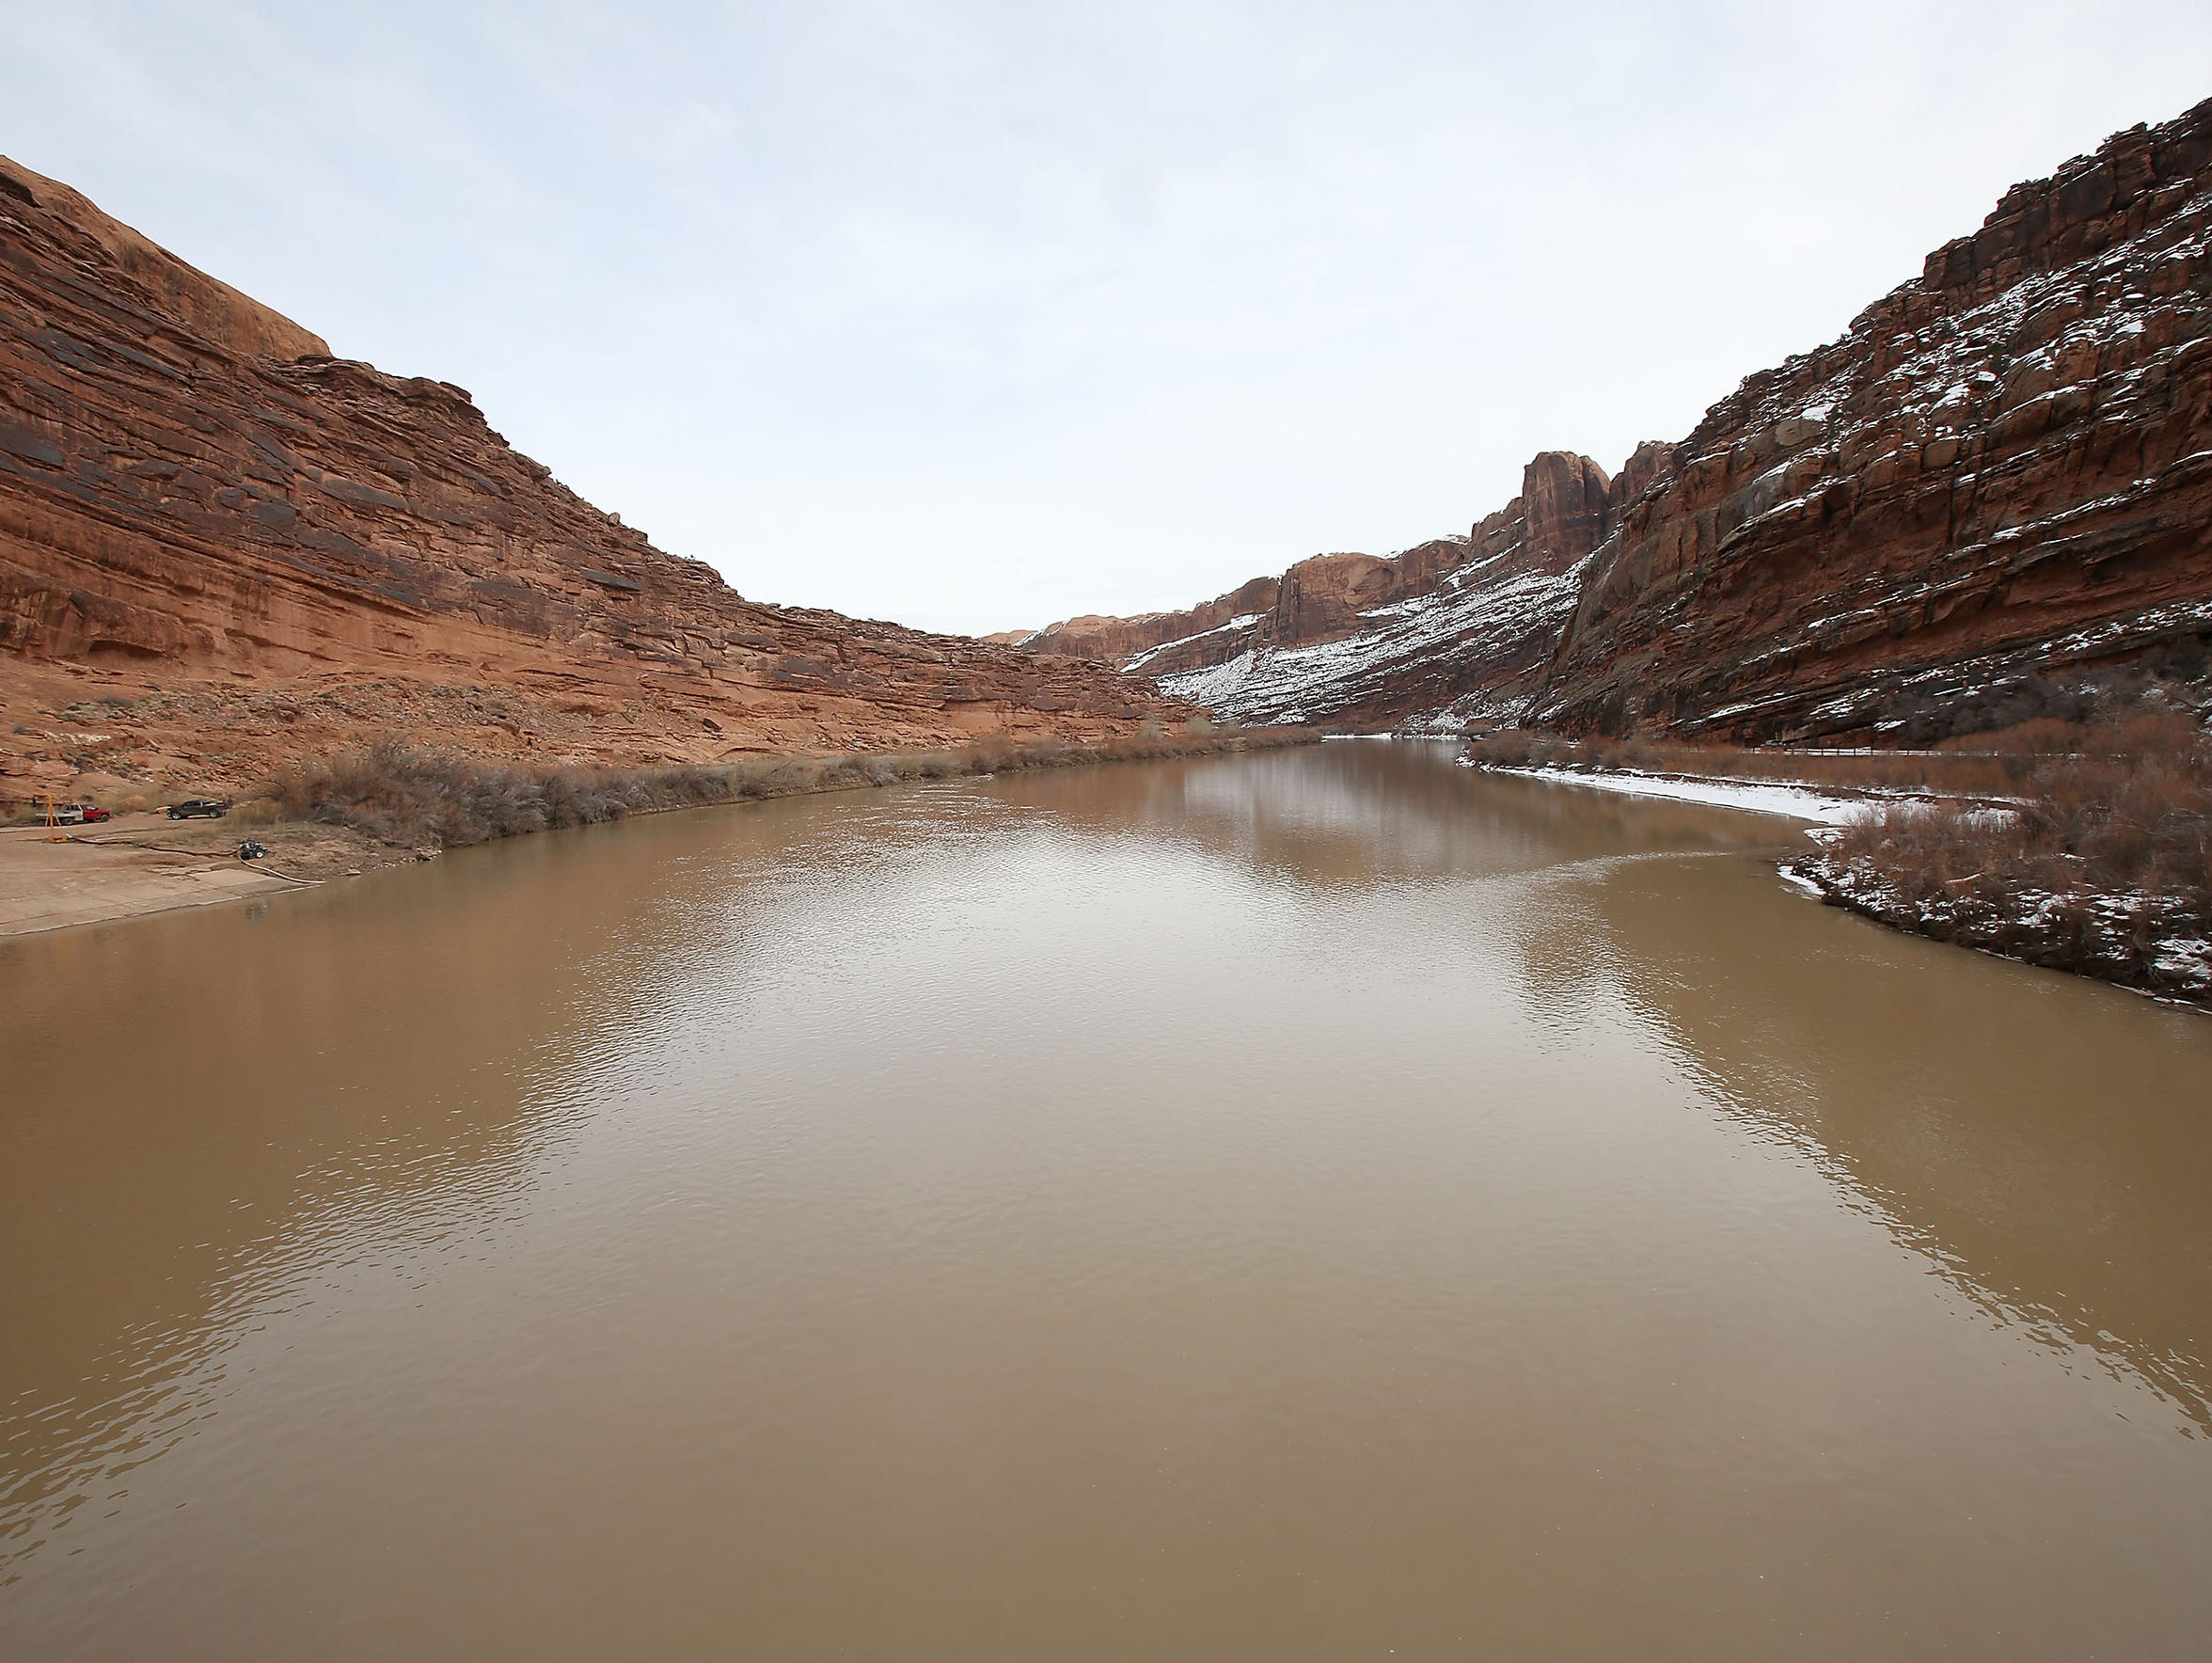 The Colorado River near Moab, Utah.